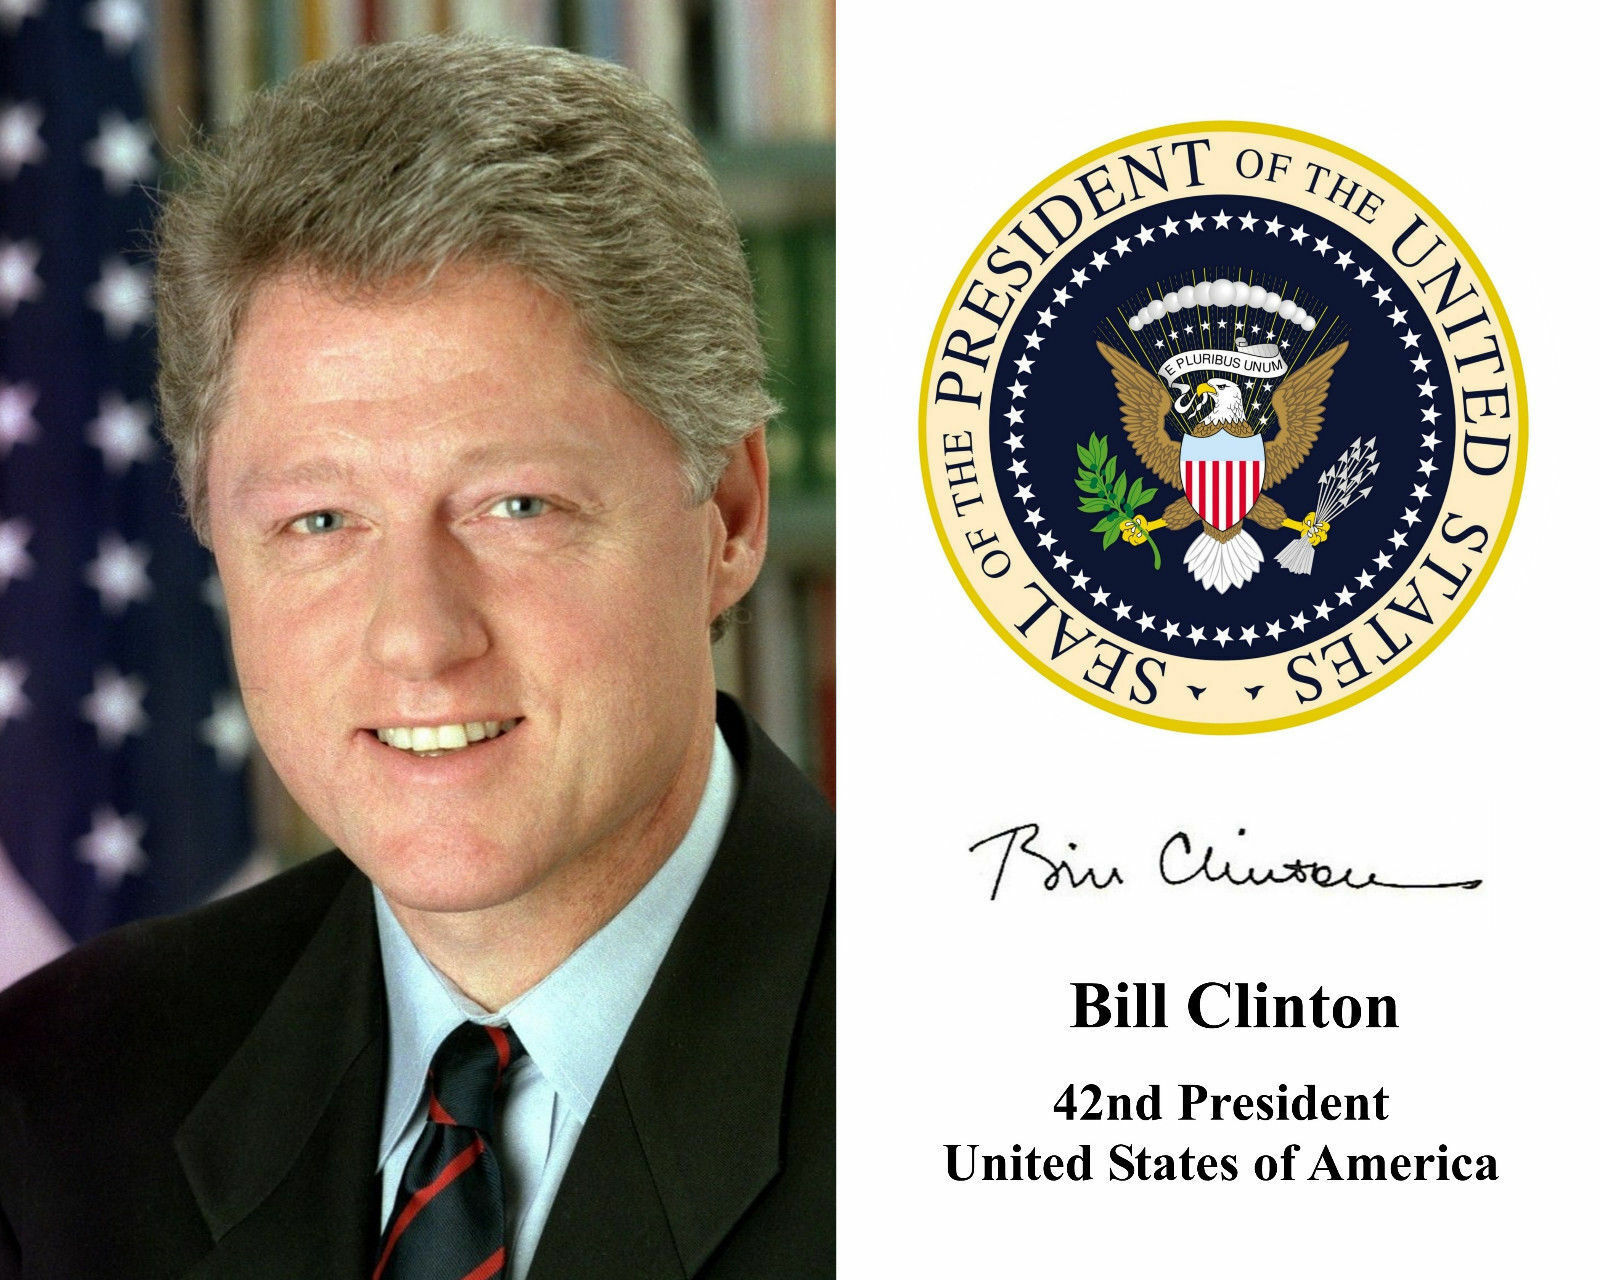 a biography of bill clinton the 42nd president of the united states of america William jefferson clinton, widely known as bill clinton, is an american politician and the husband of hillary clinton, who ran in 2016's presidential election against the current us president donald trump clinton is also a former president of the united states he served as the 42nd us.